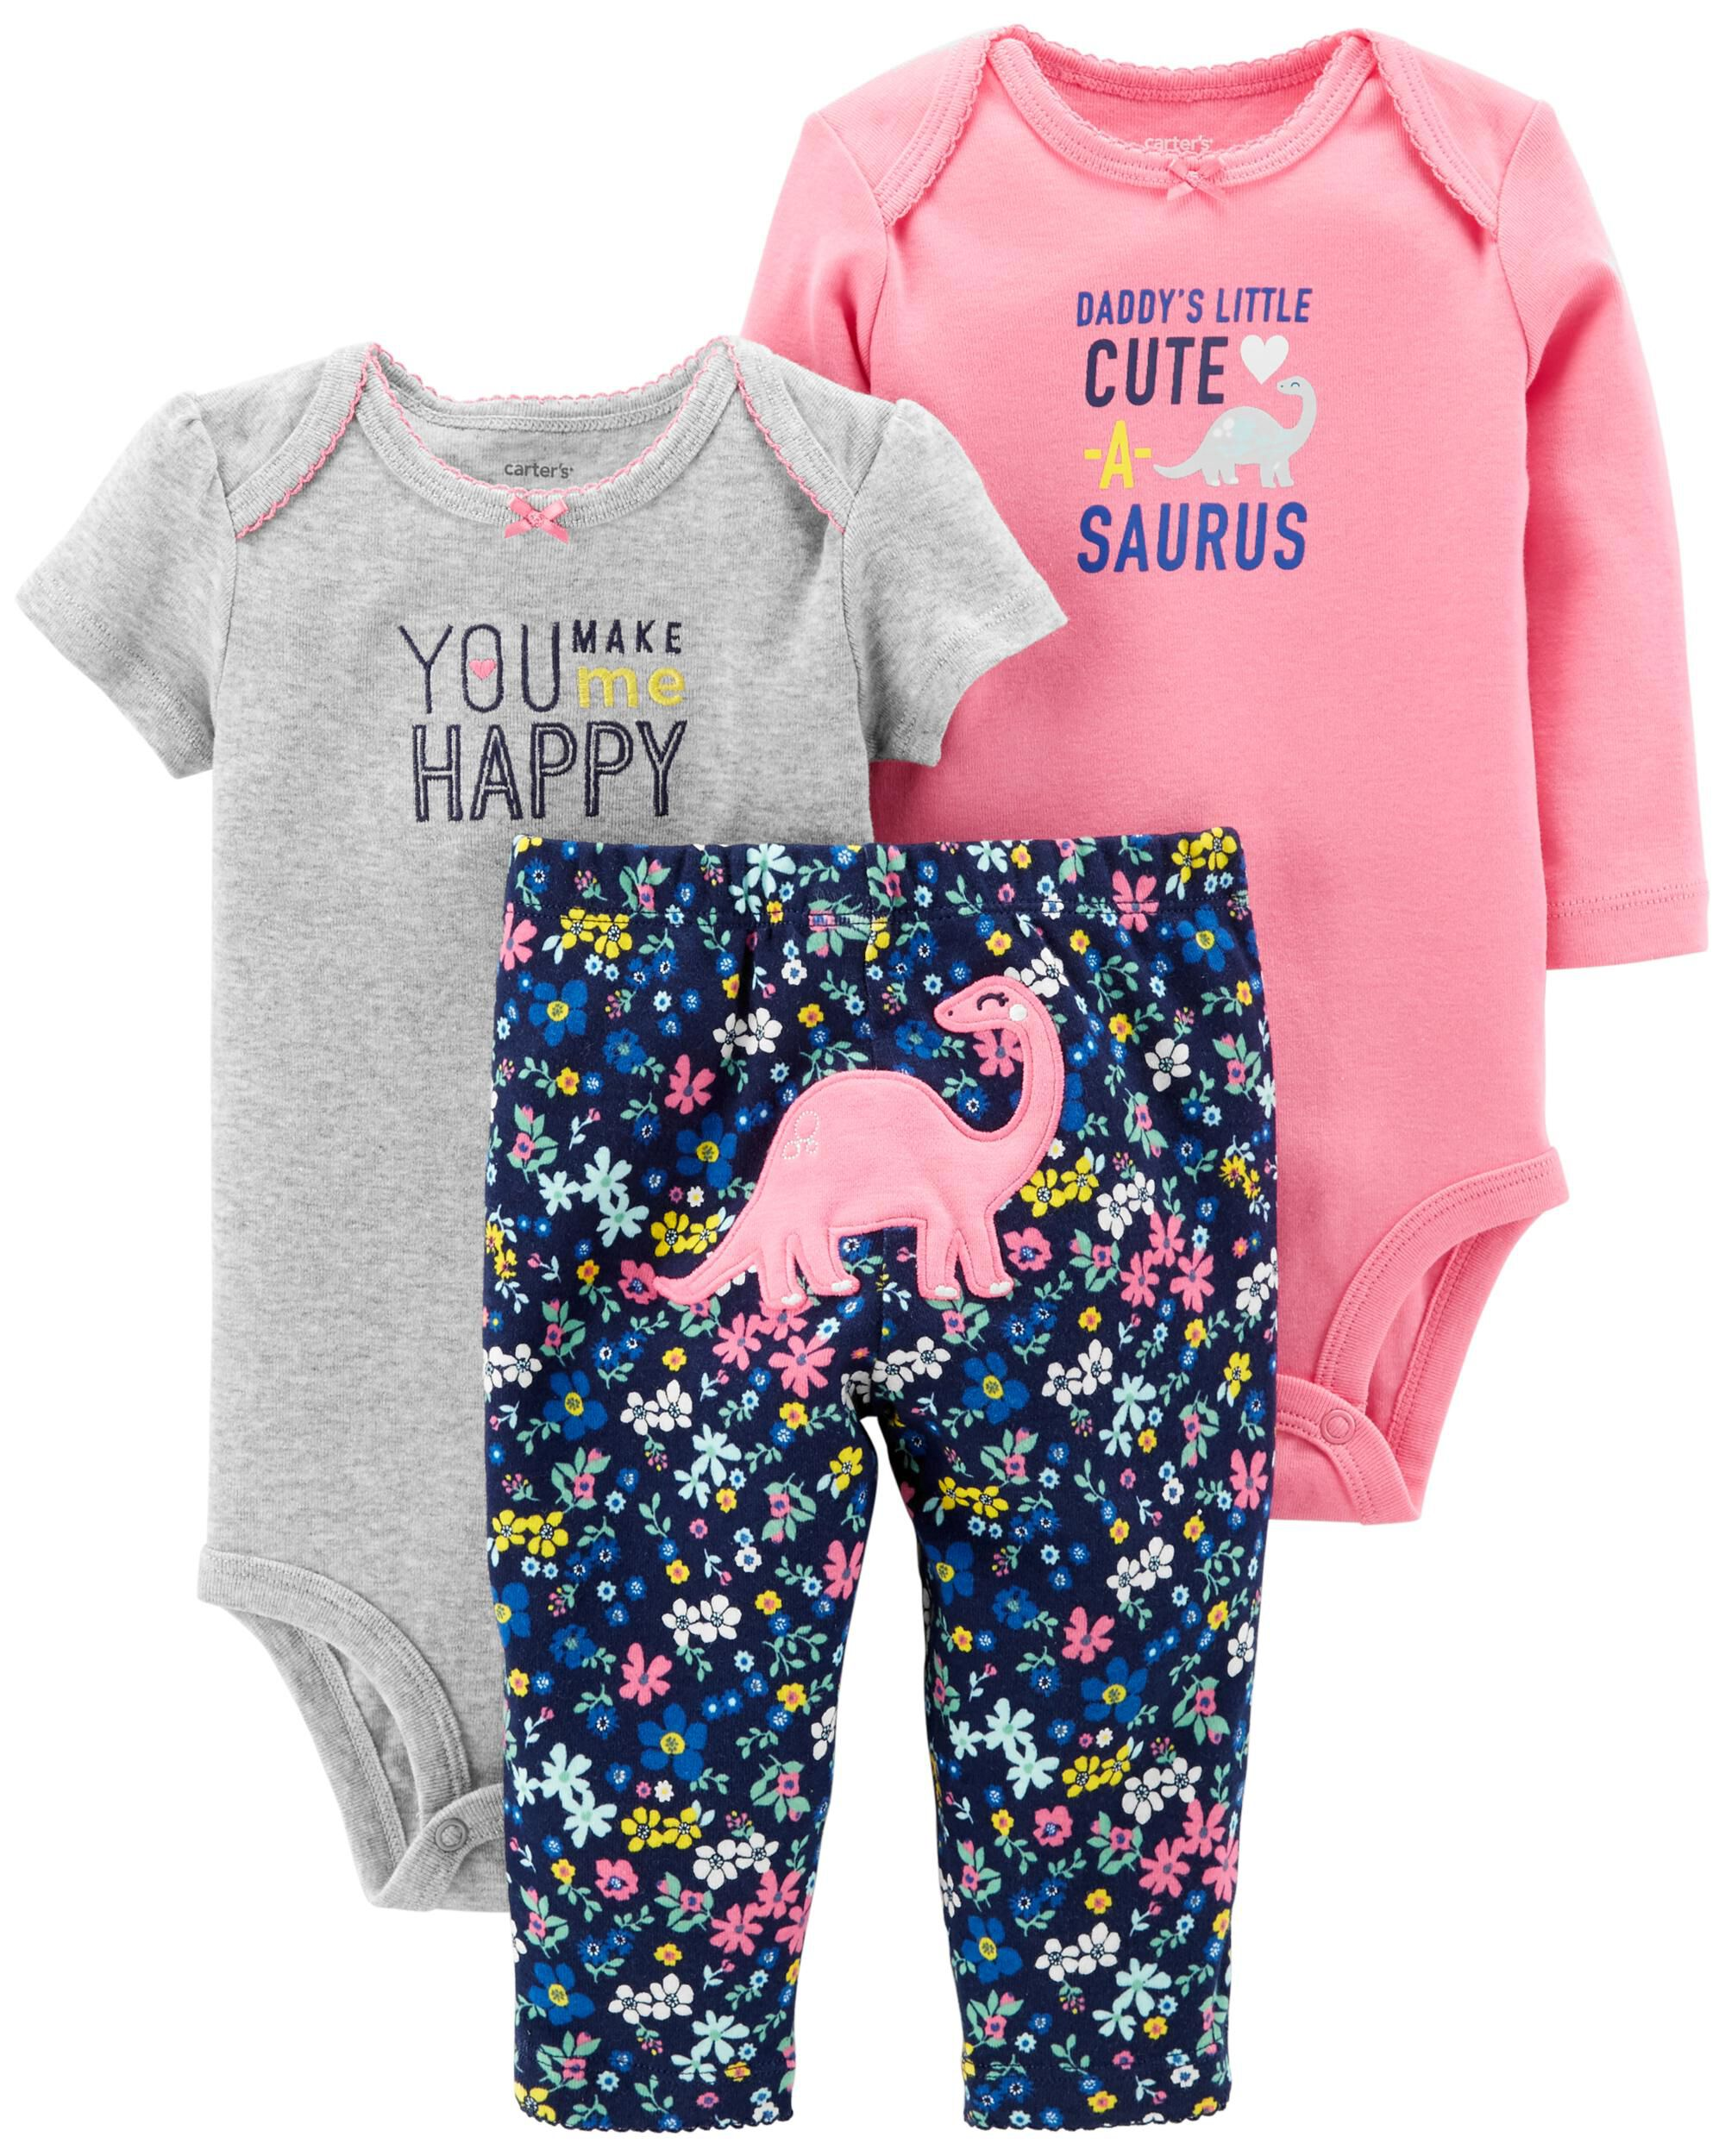 Carters.com in Russian - saving with caring for children